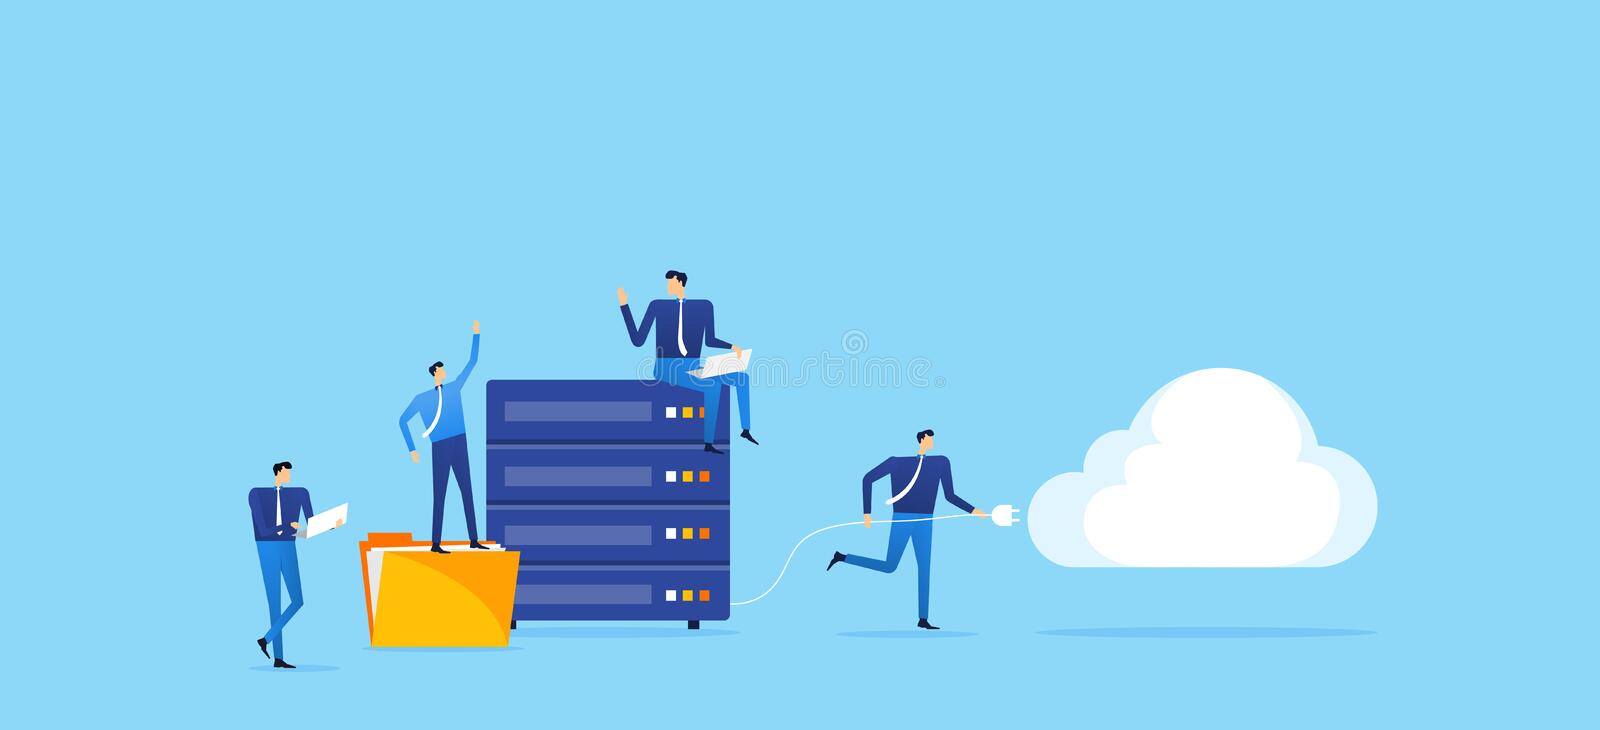 Business technology storage server connect to cloud computing stock illustration